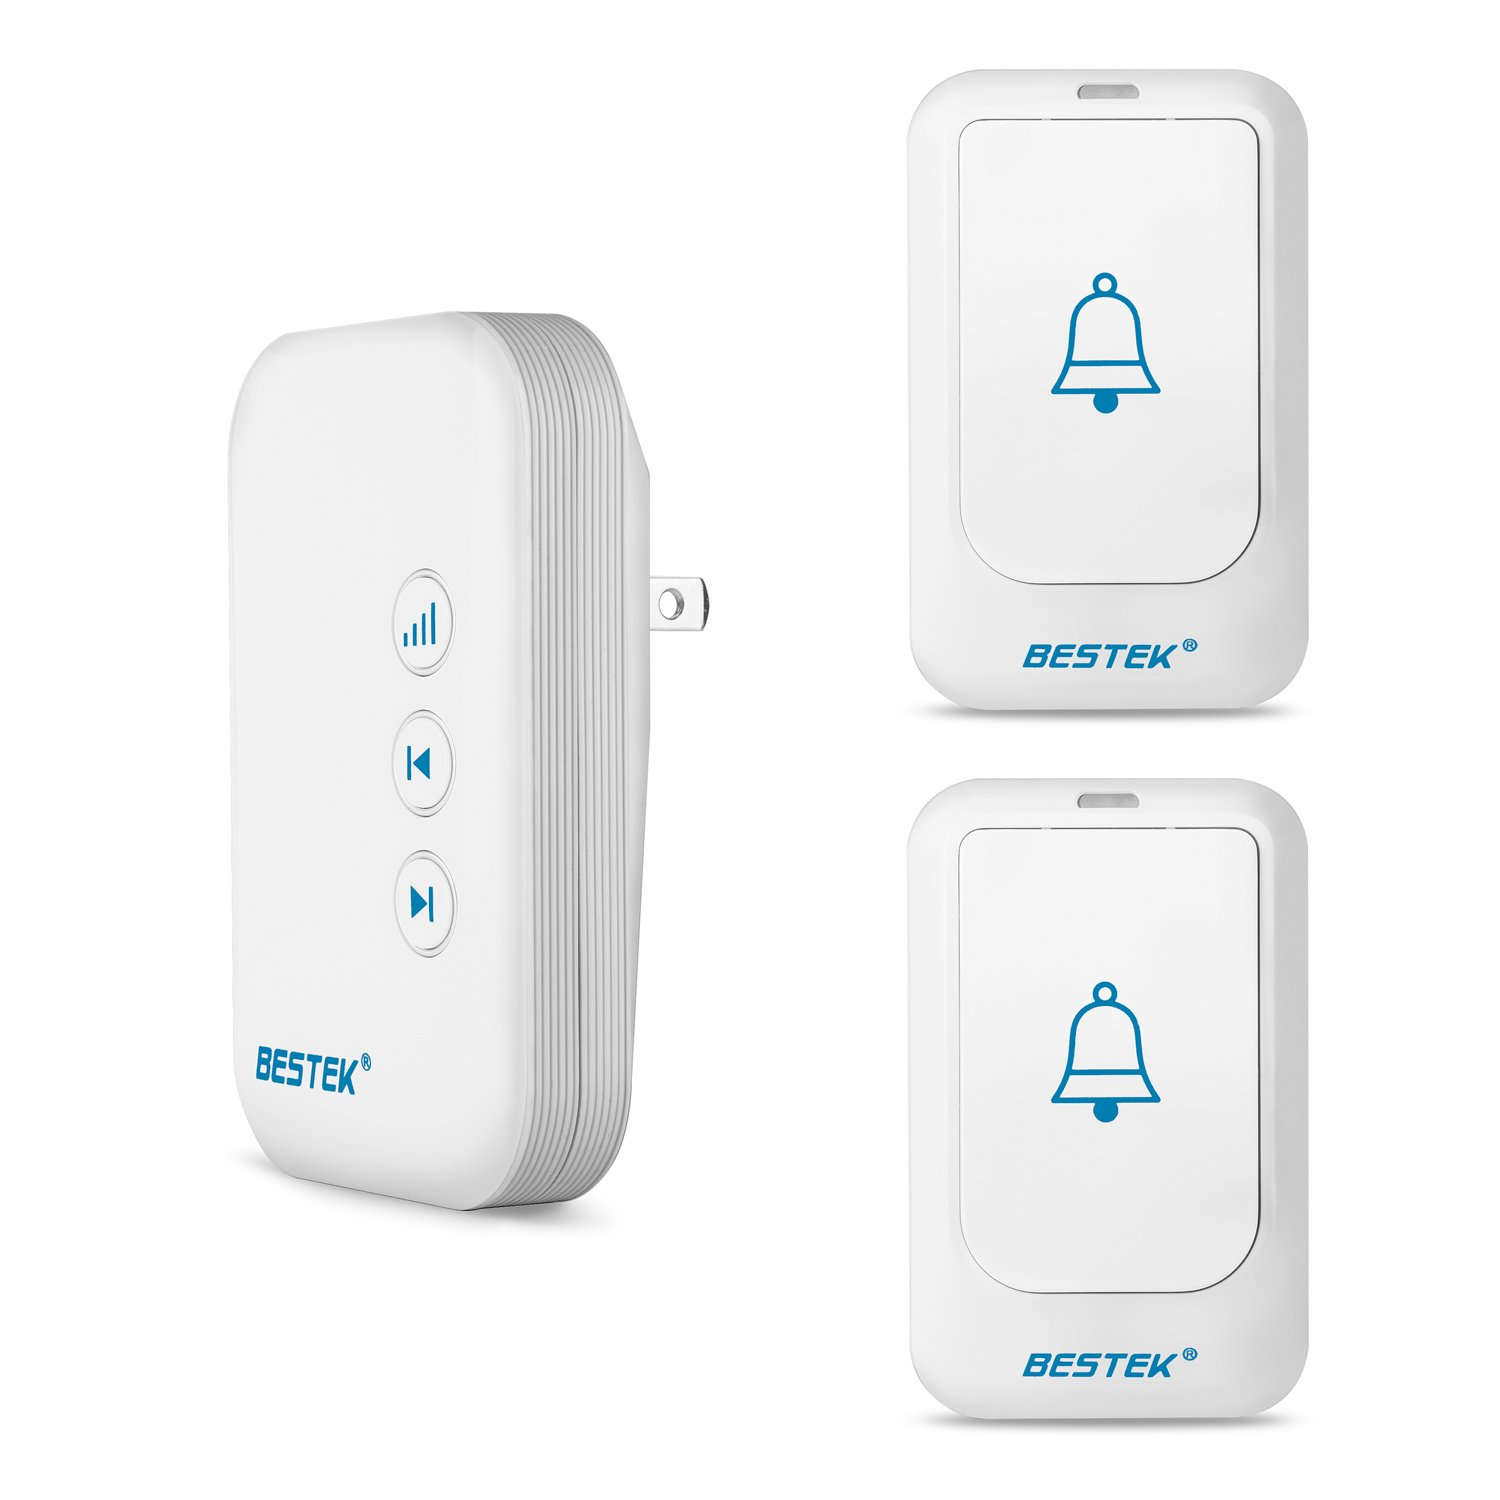 BESTEK Wireless Doorbell, Doorbell Kit Operating at over 500-feet Range with 2 Remote Buttons and 1 Plugin Receiver, LED Flash Lights, 36 Chimes for Home and Office (FCC Certification)-White by BESTEK (Image #1)